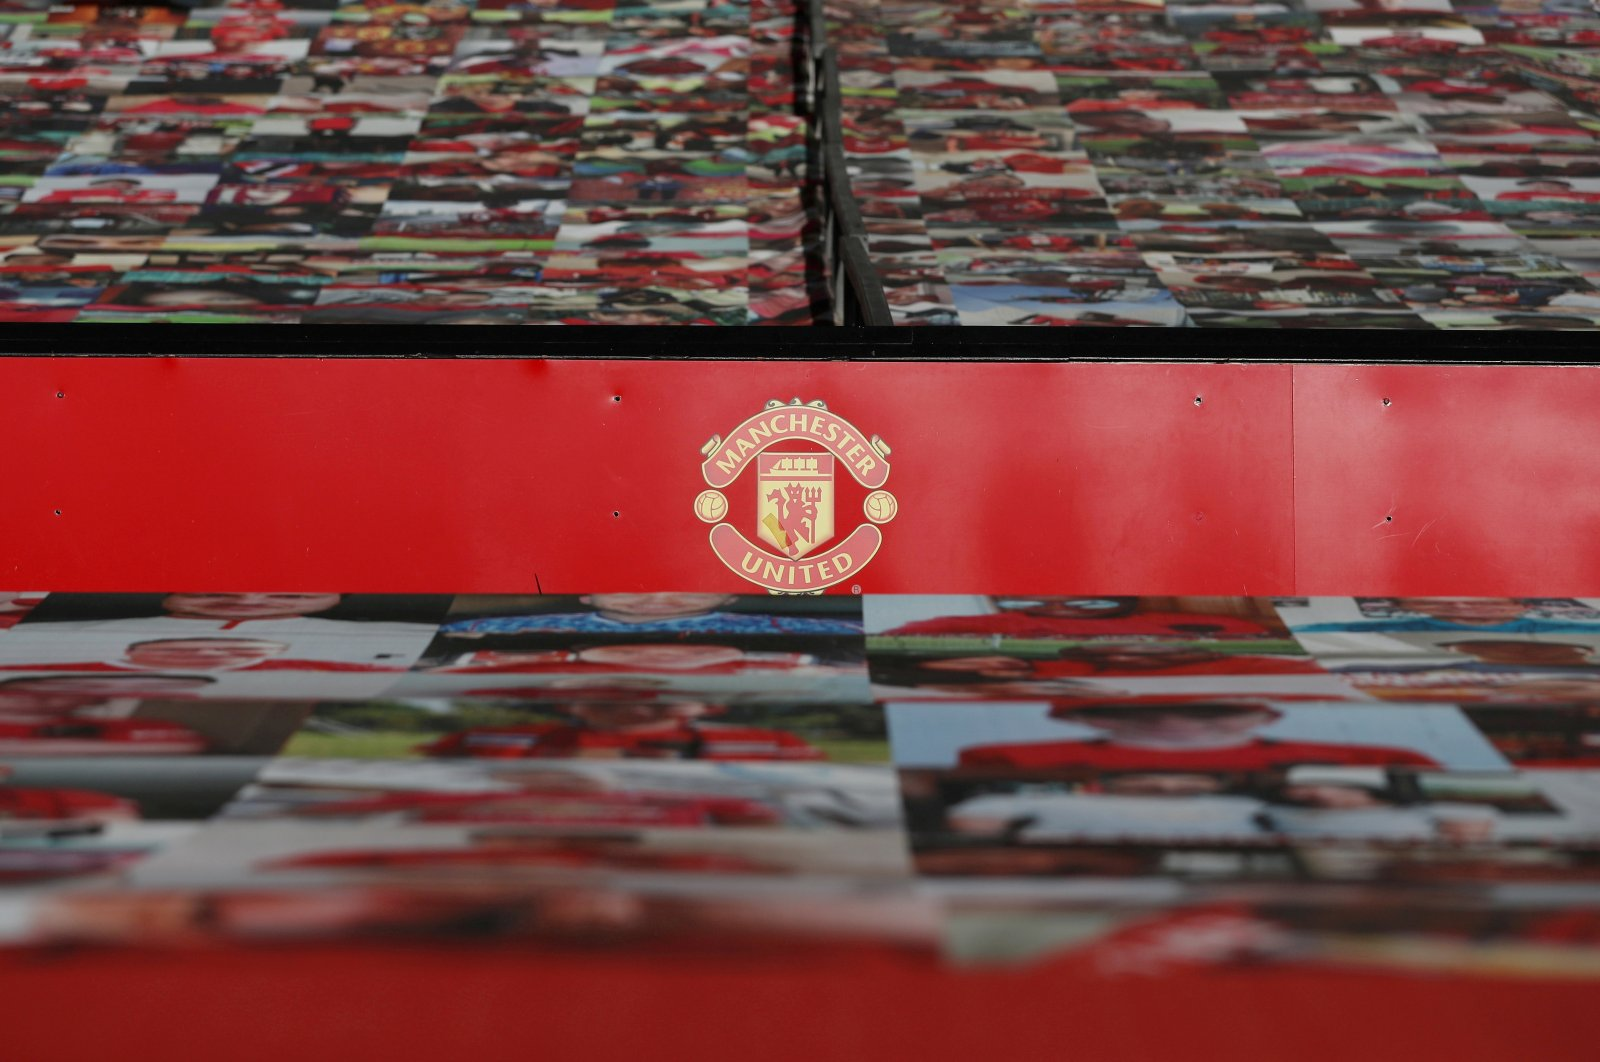 General view inside the stadium ahead of English Premier League football match between Manchester United and Crystal Palace at the Old Traford in Manchester, England, Sept. 19, 2020. (Reuters Photo)